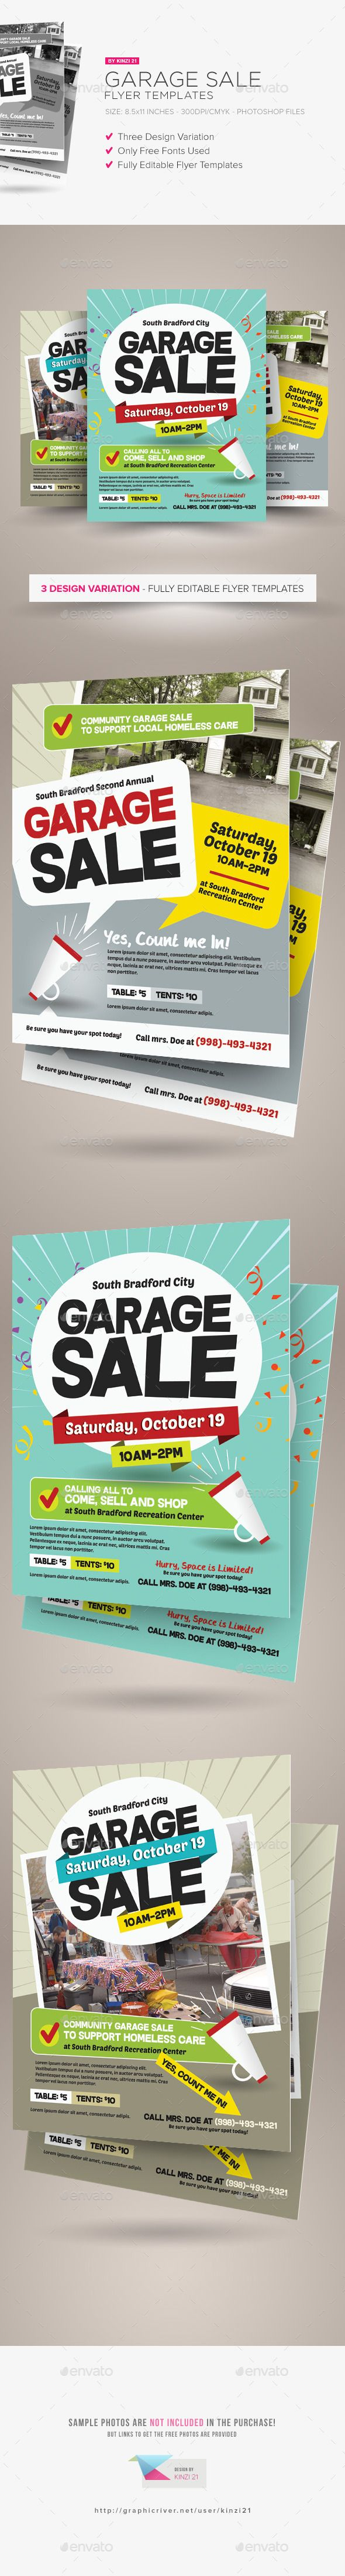 best images about flyers inspiraci oacute n banner garage flyer templates